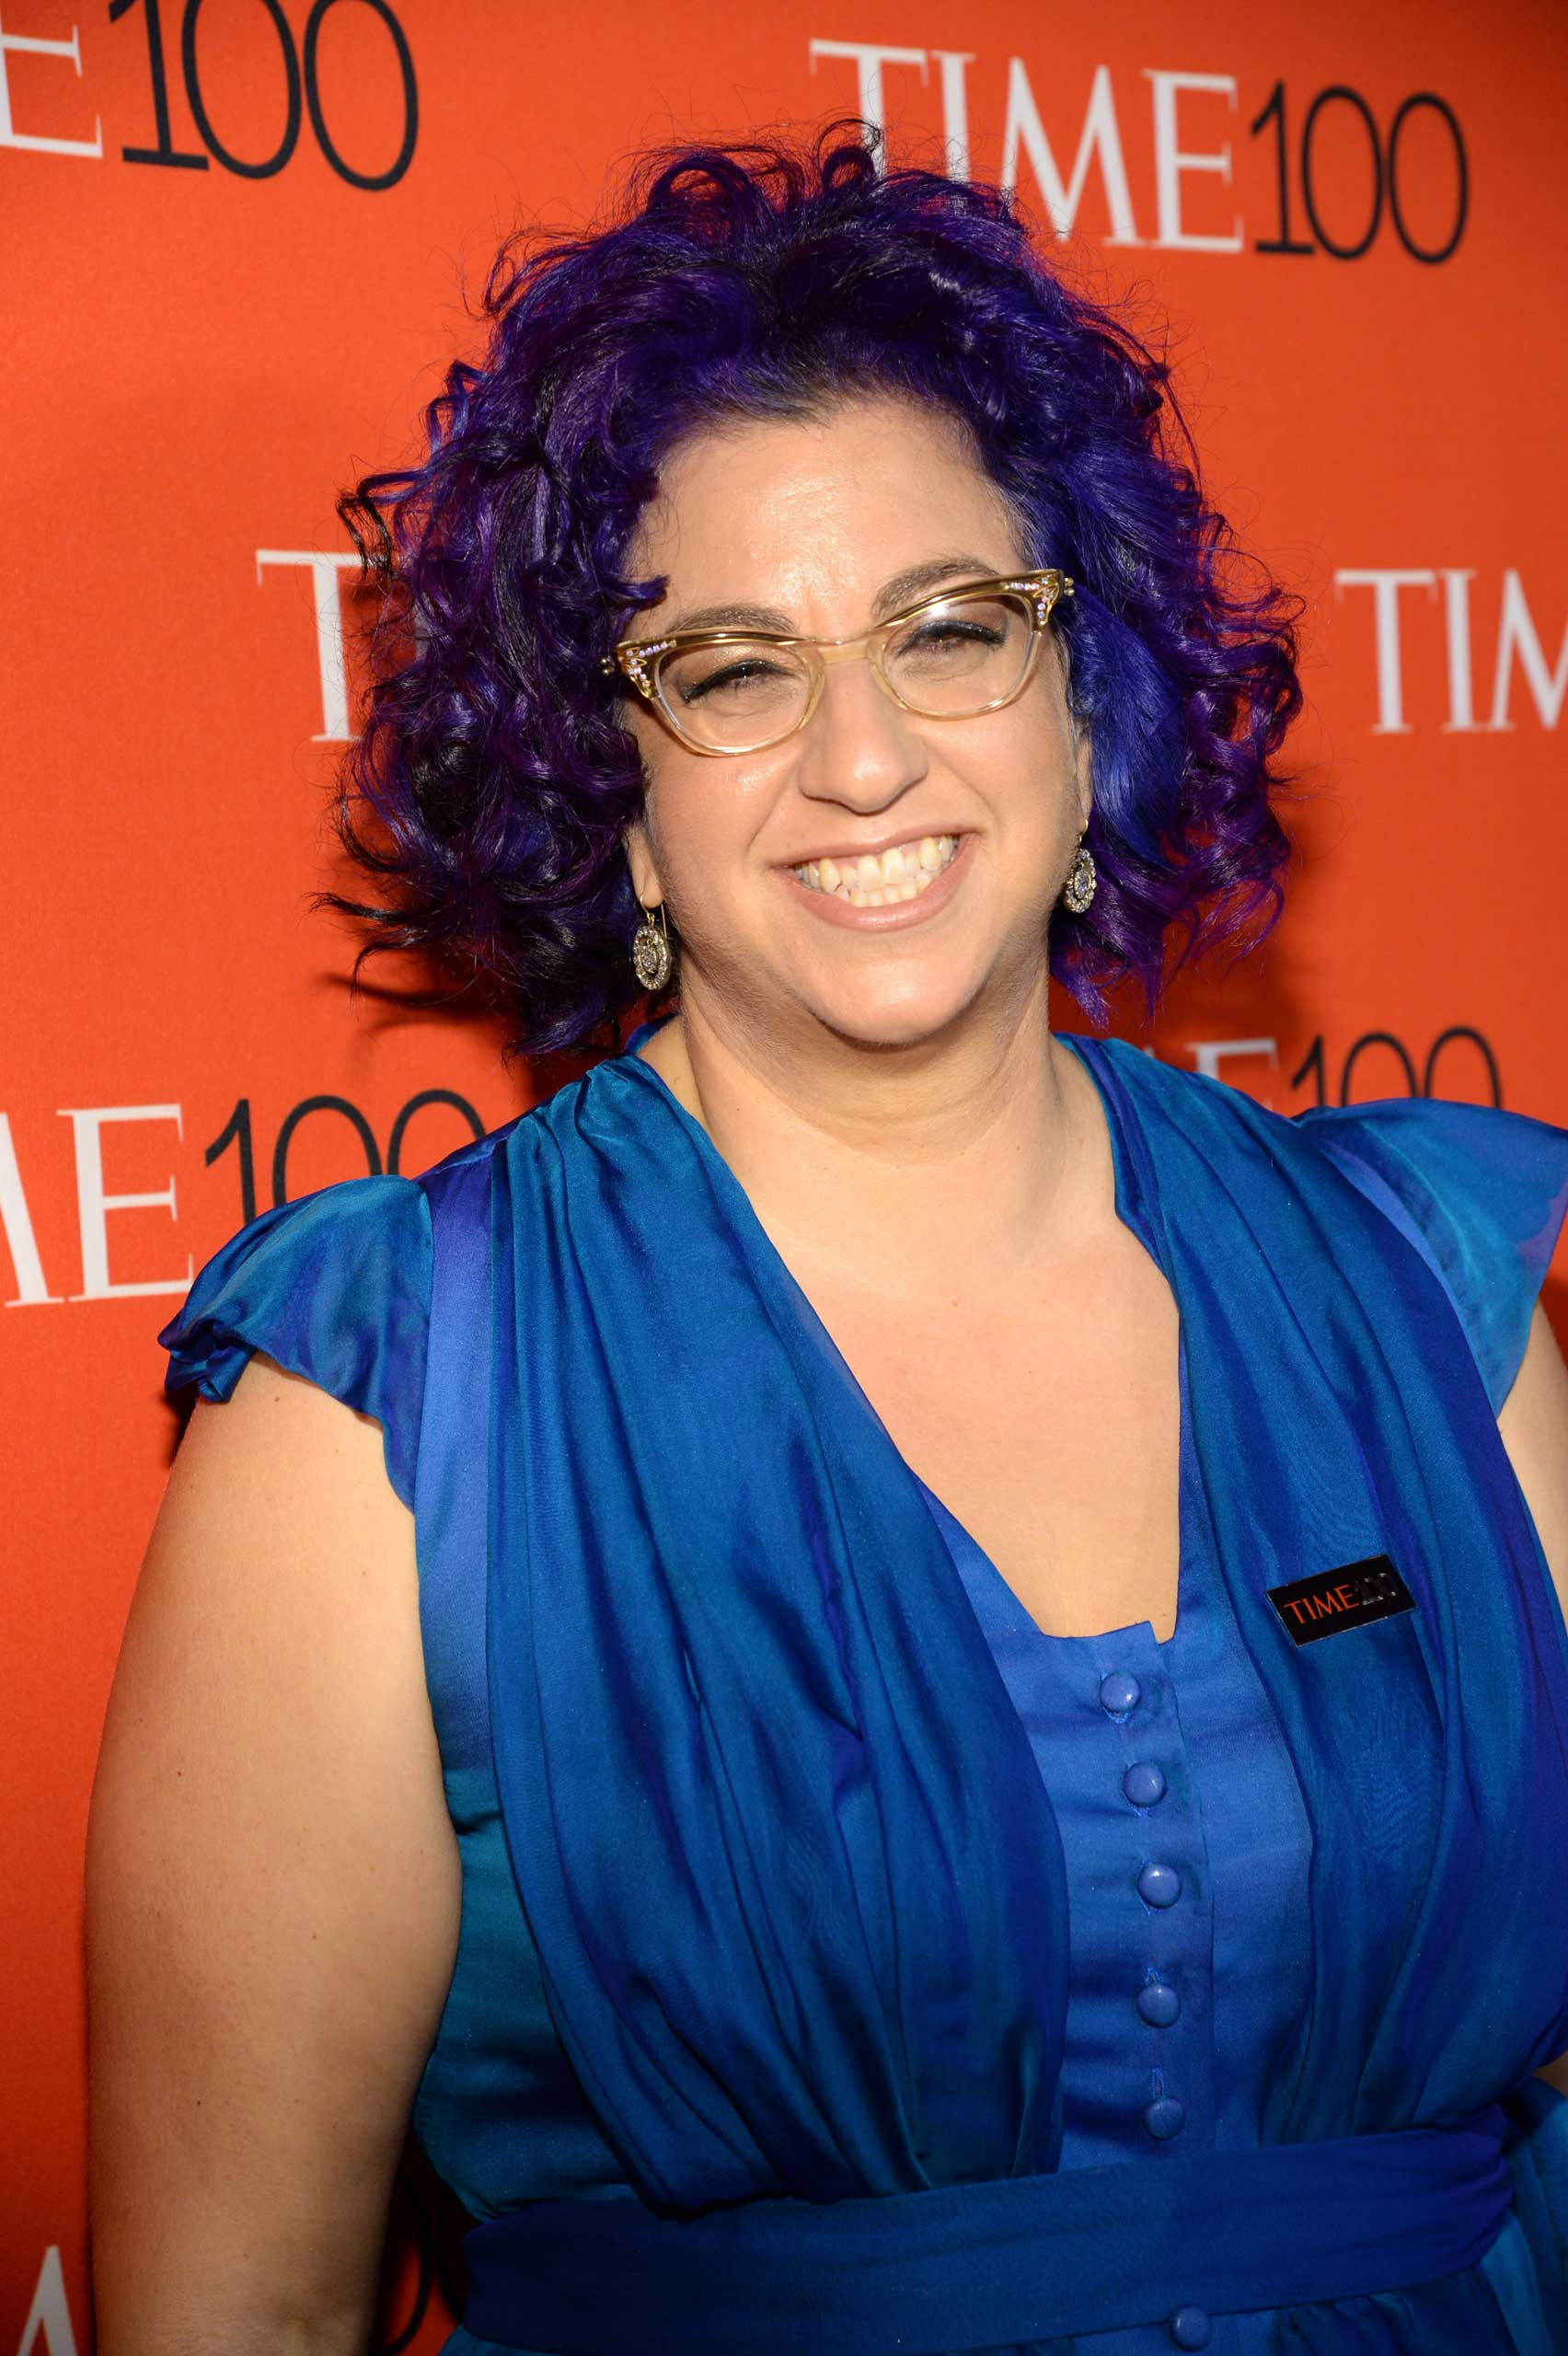 Jenji Kohan attends the TIME 100 Gala at Jazz at Lincoln Center in New York City on Apr. 21, 2015.